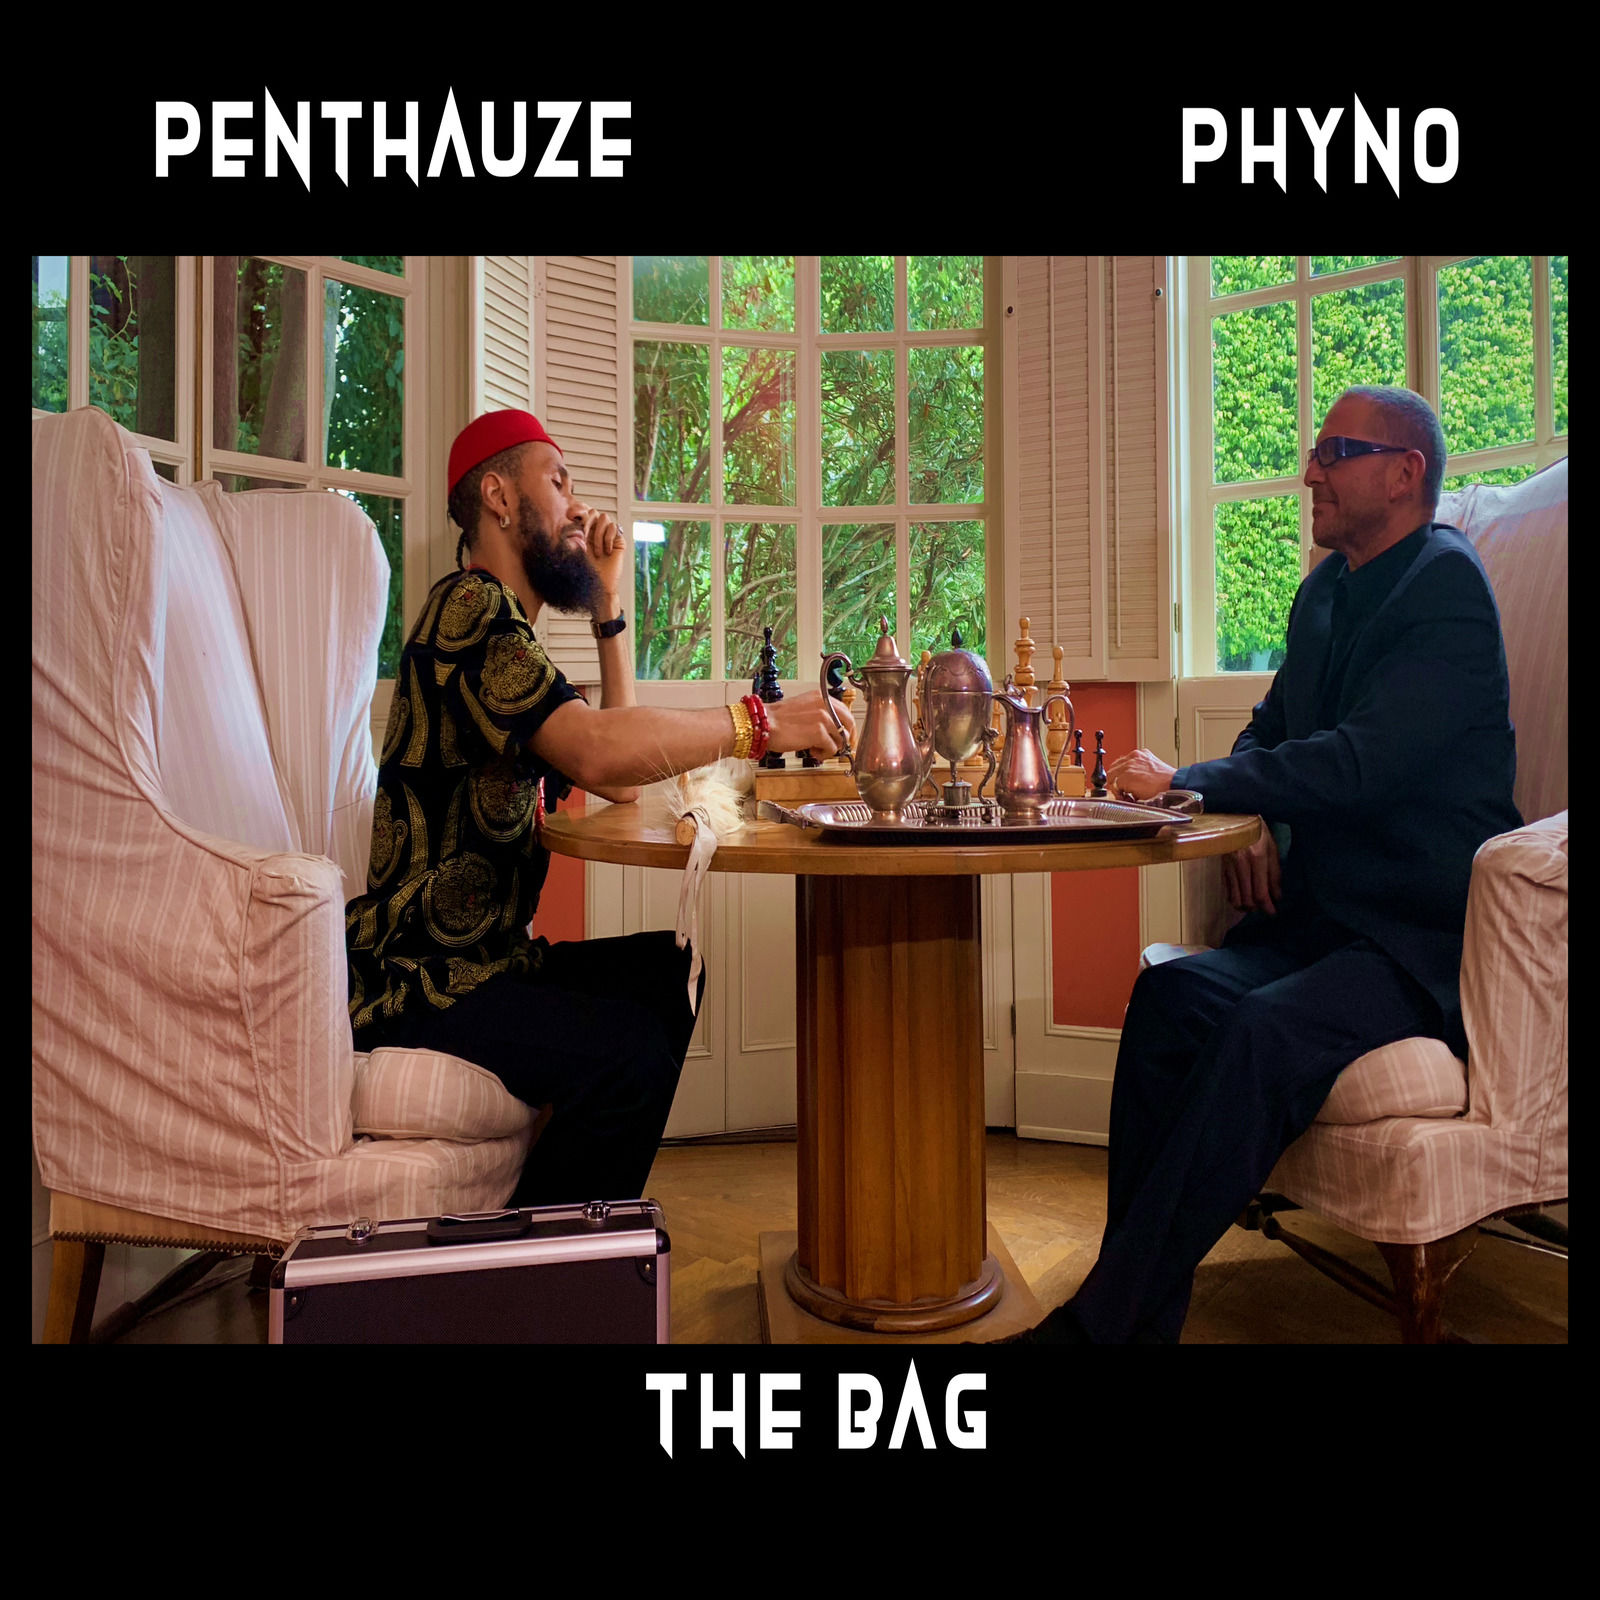 VIDEO: Phyno - The Bag